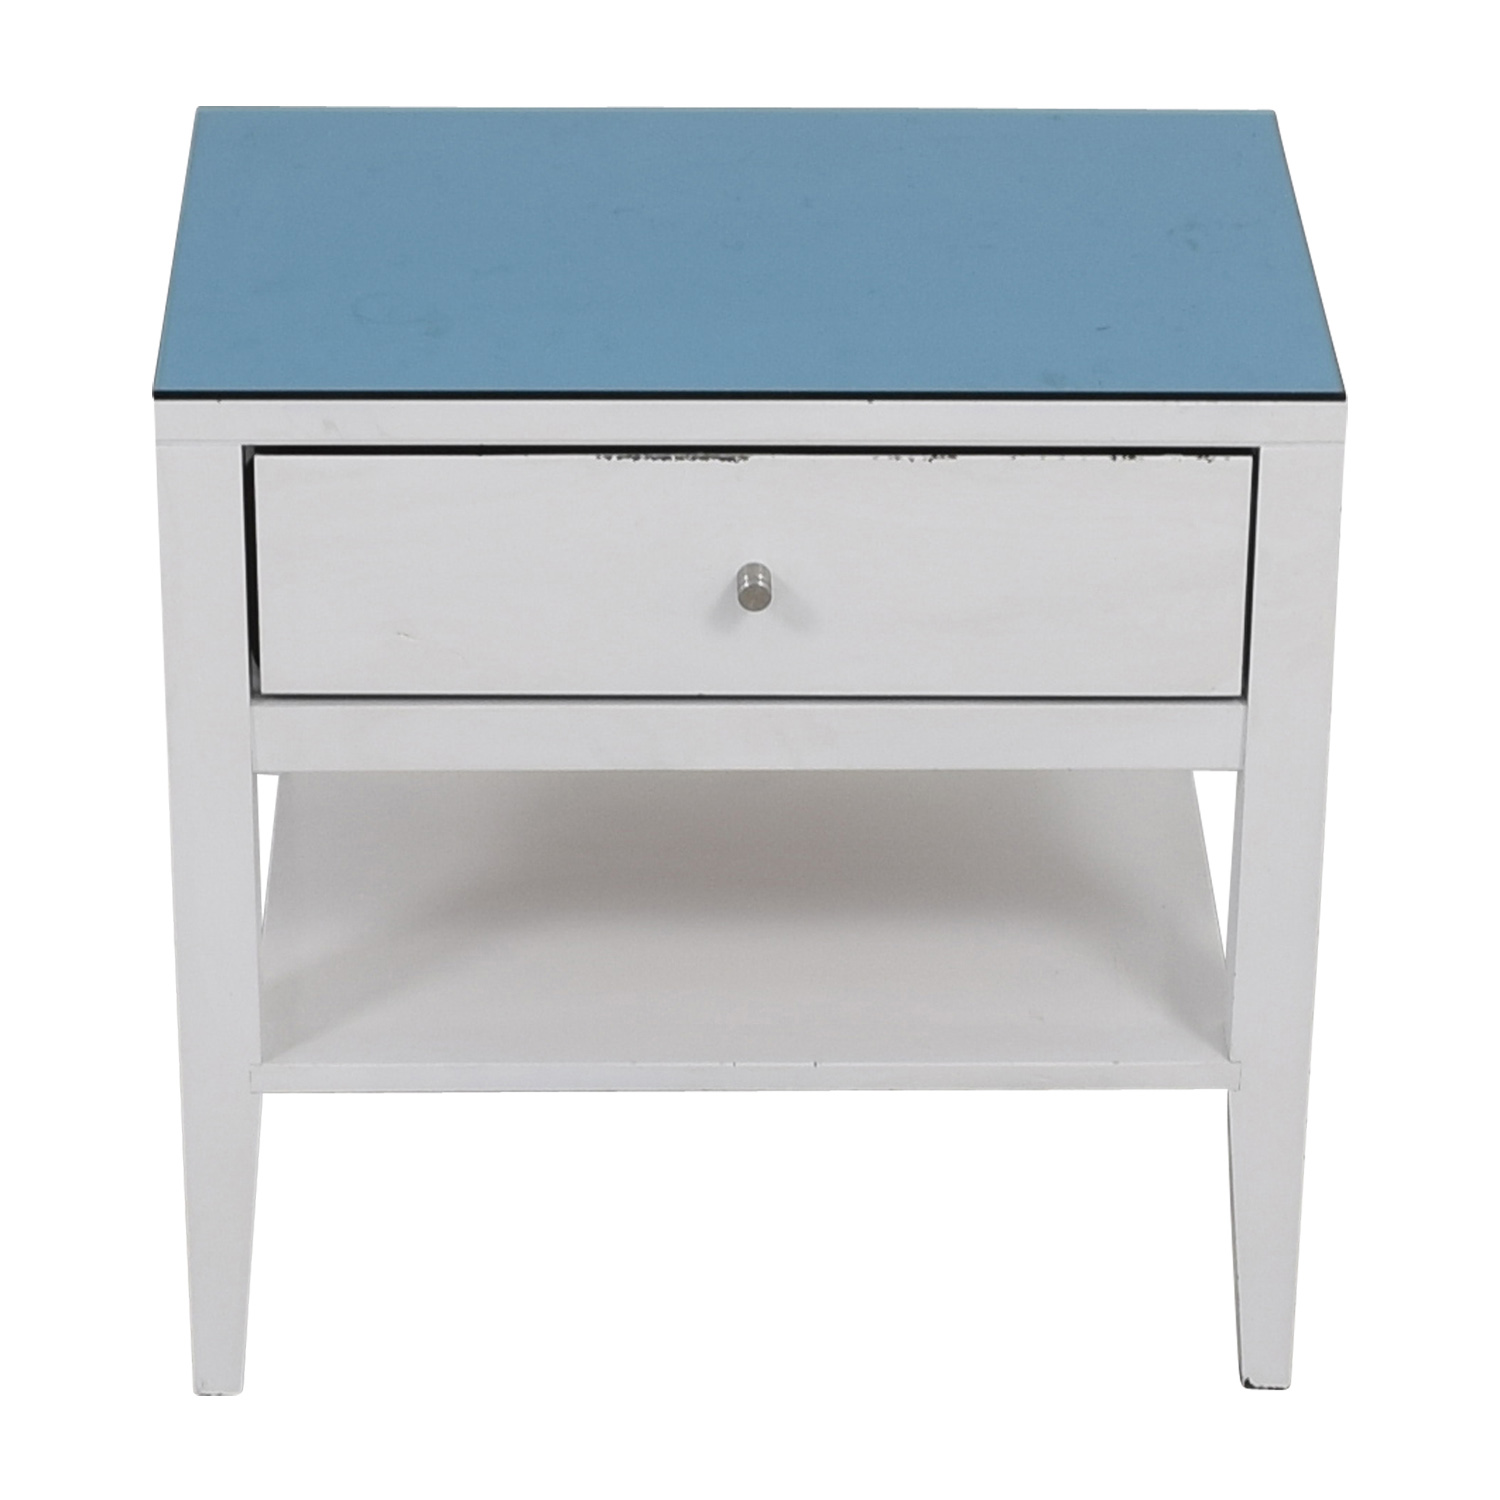 Room & Board Room & Board Calvin Blue Top White Nightstand price